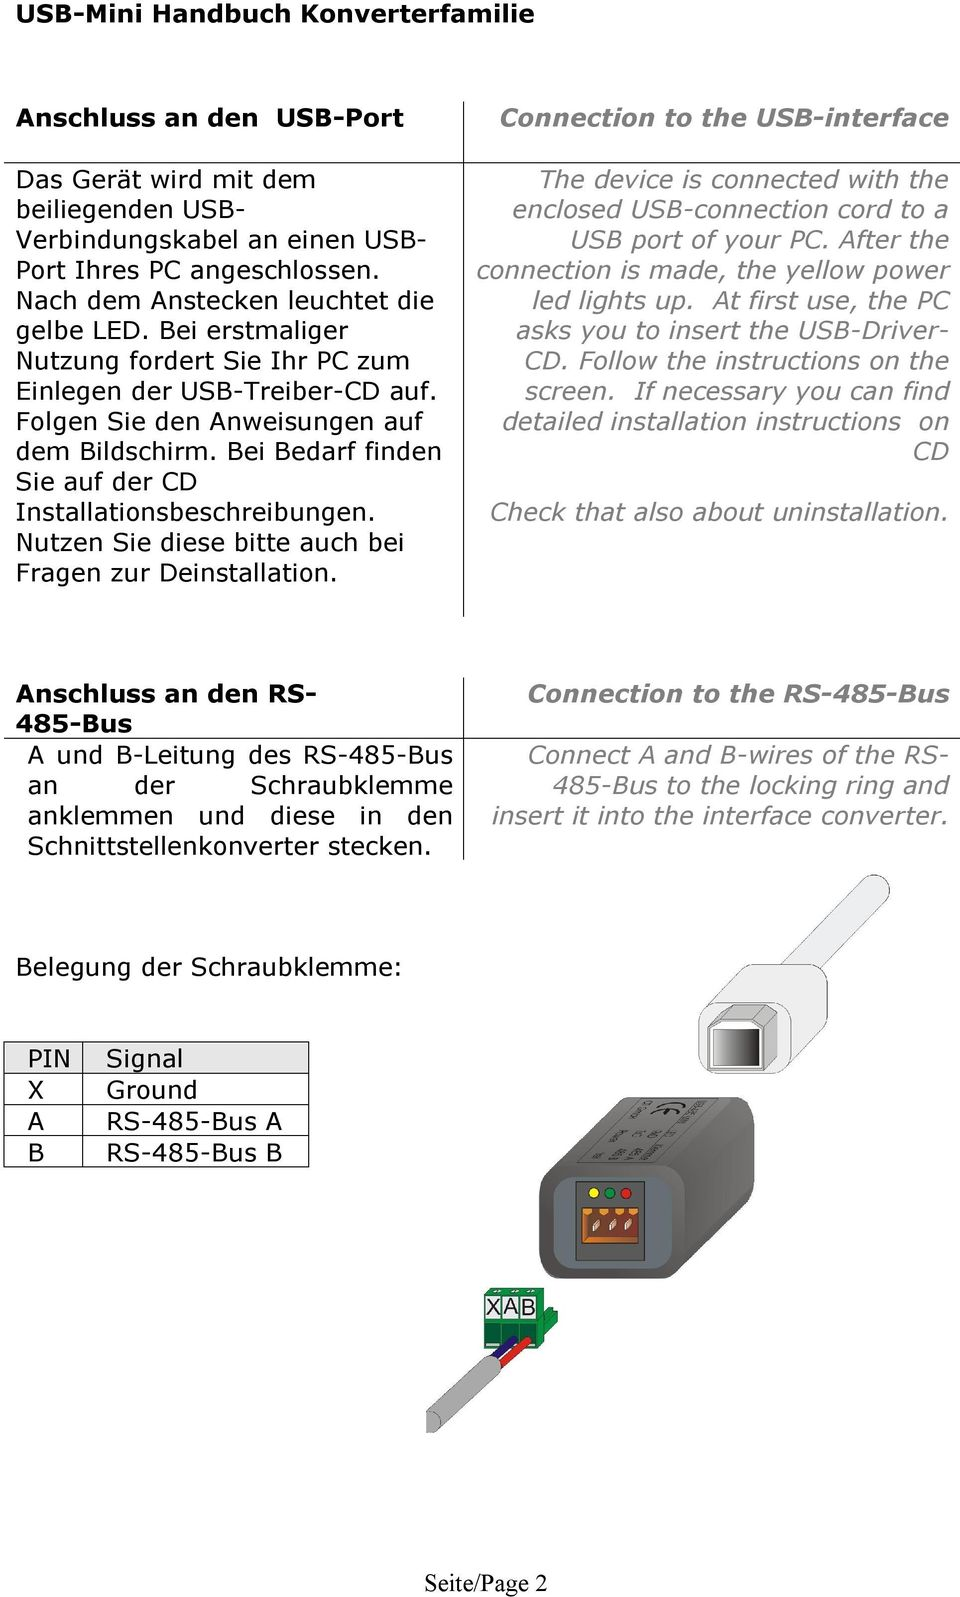 Nutzen Sie diese bitte auch bei Fragen zur Deinstallation. Connection to the USB-interface The device is connected with the enclosed USB-connection cord to a USB port of your PC.